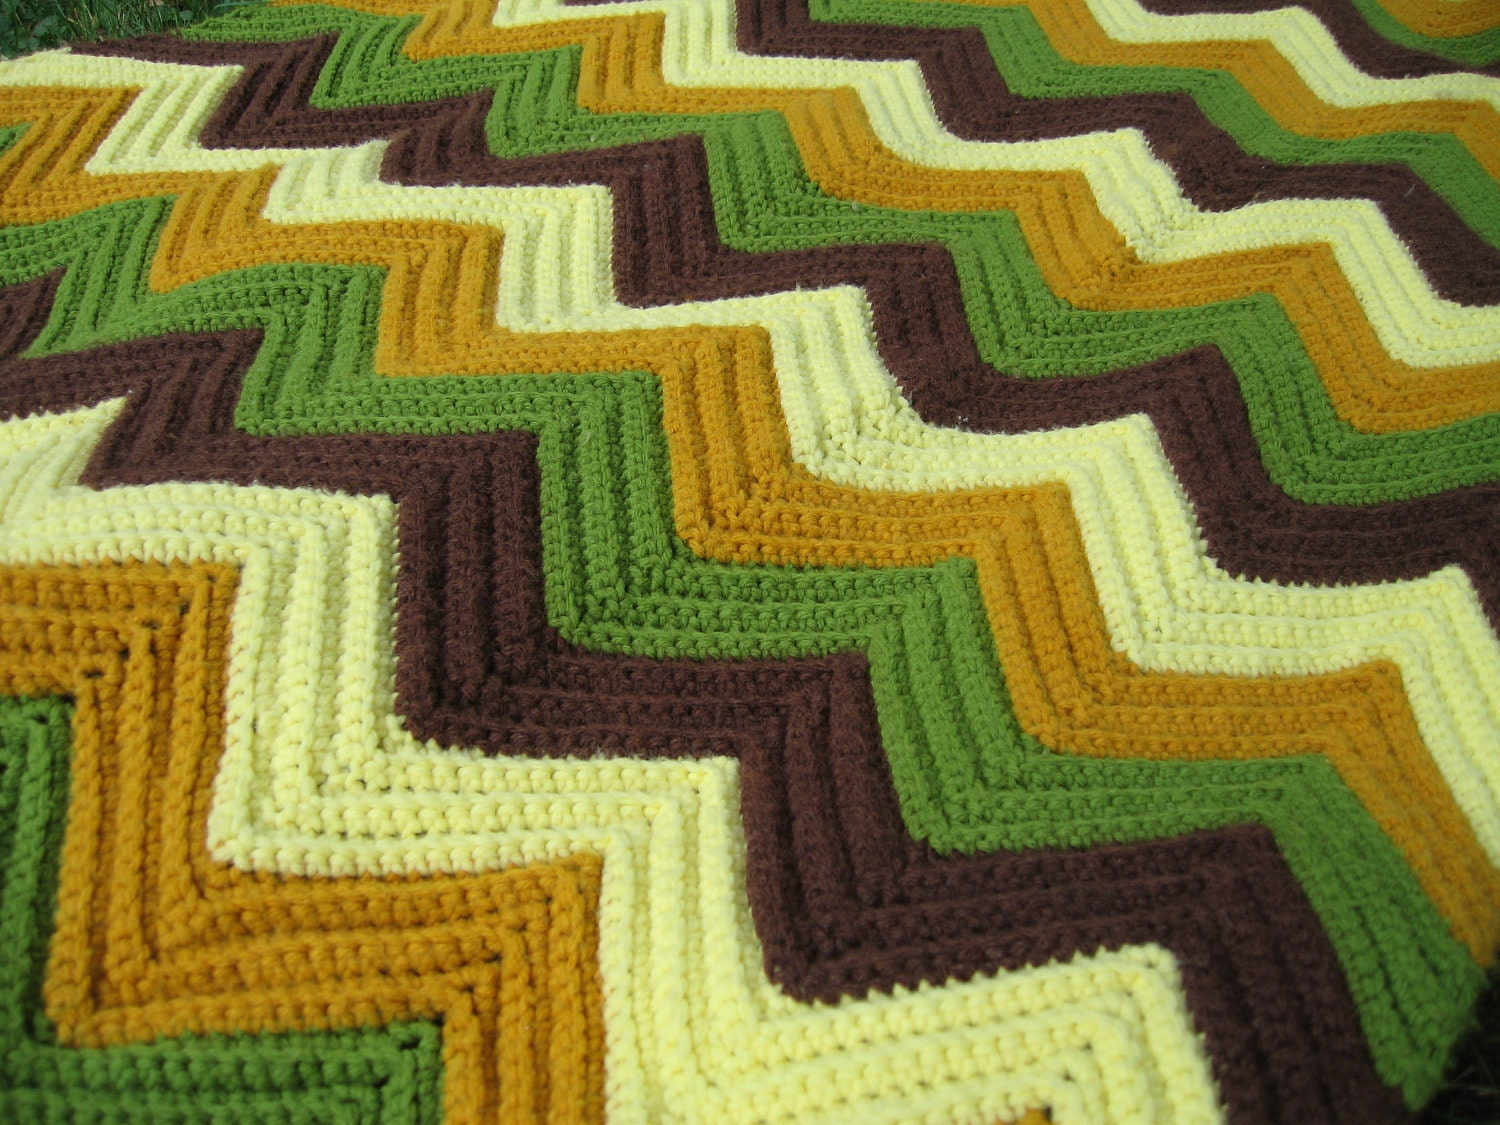 Crochet Patterns Zigzag : ZIG ZAG AFGHAN CROCHET PATTERN Design Patterns